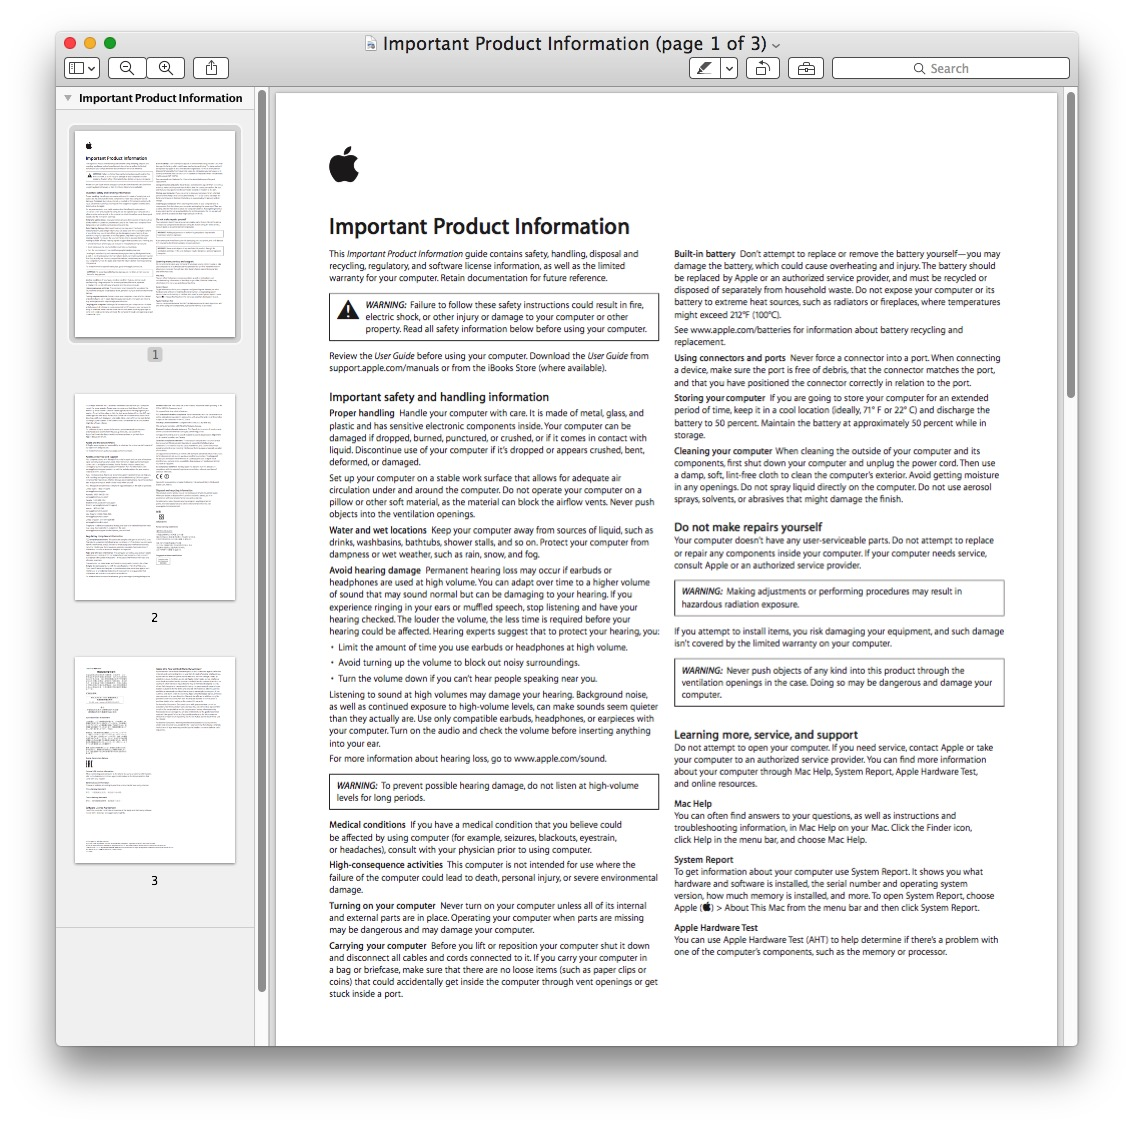 A PDF file opened in Preview on Mac ready to search